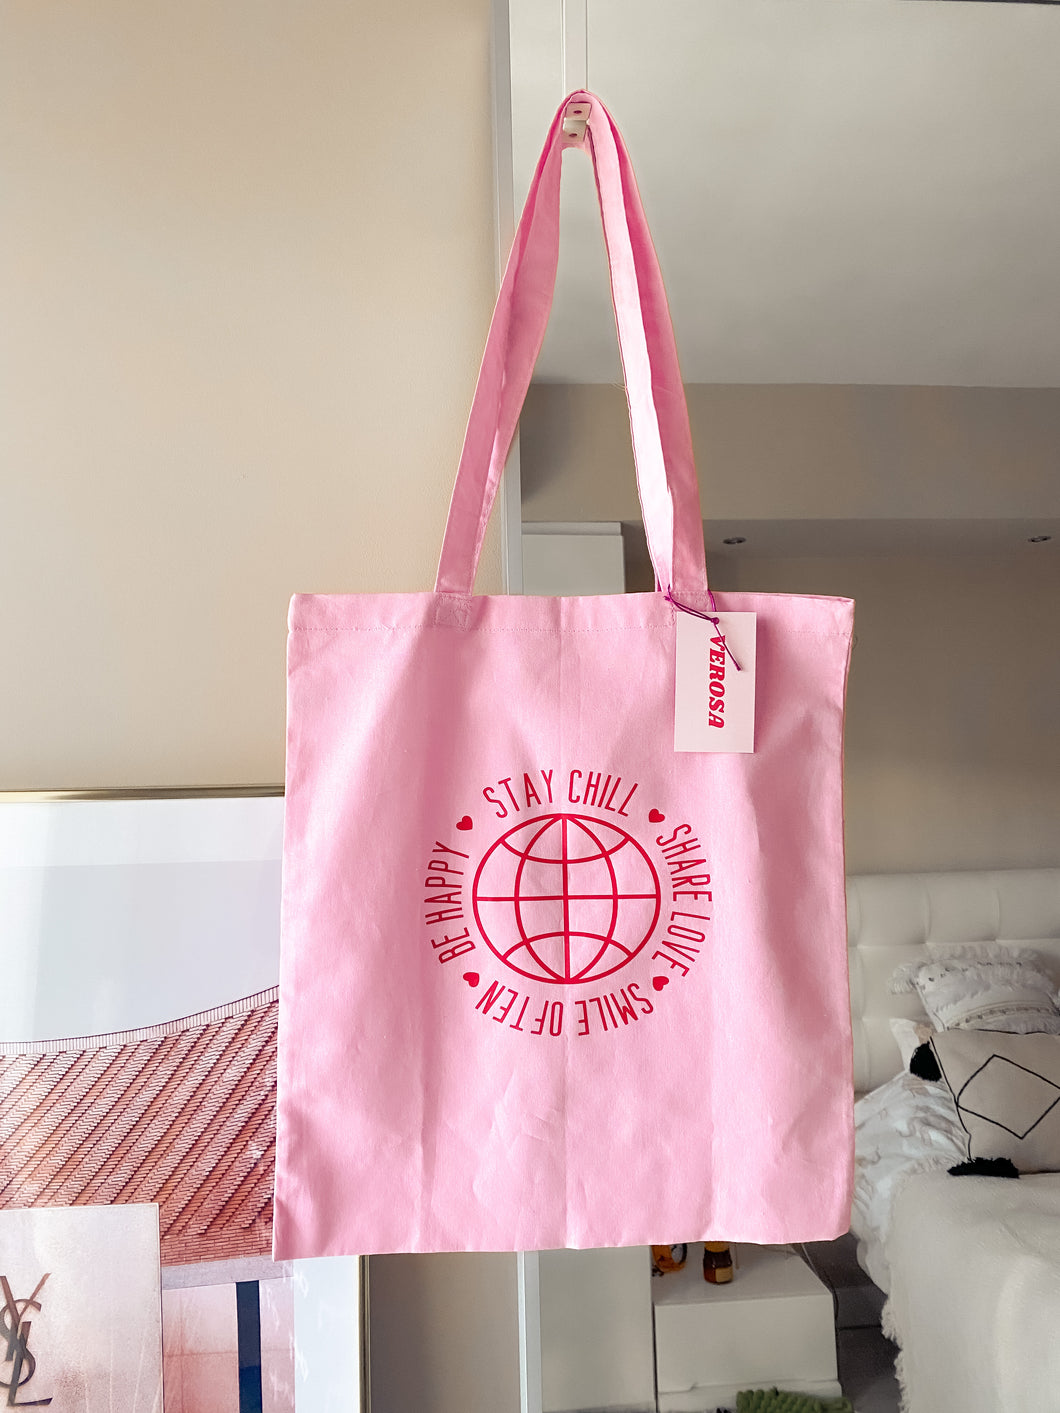 Cotton tote bag - Stay chill